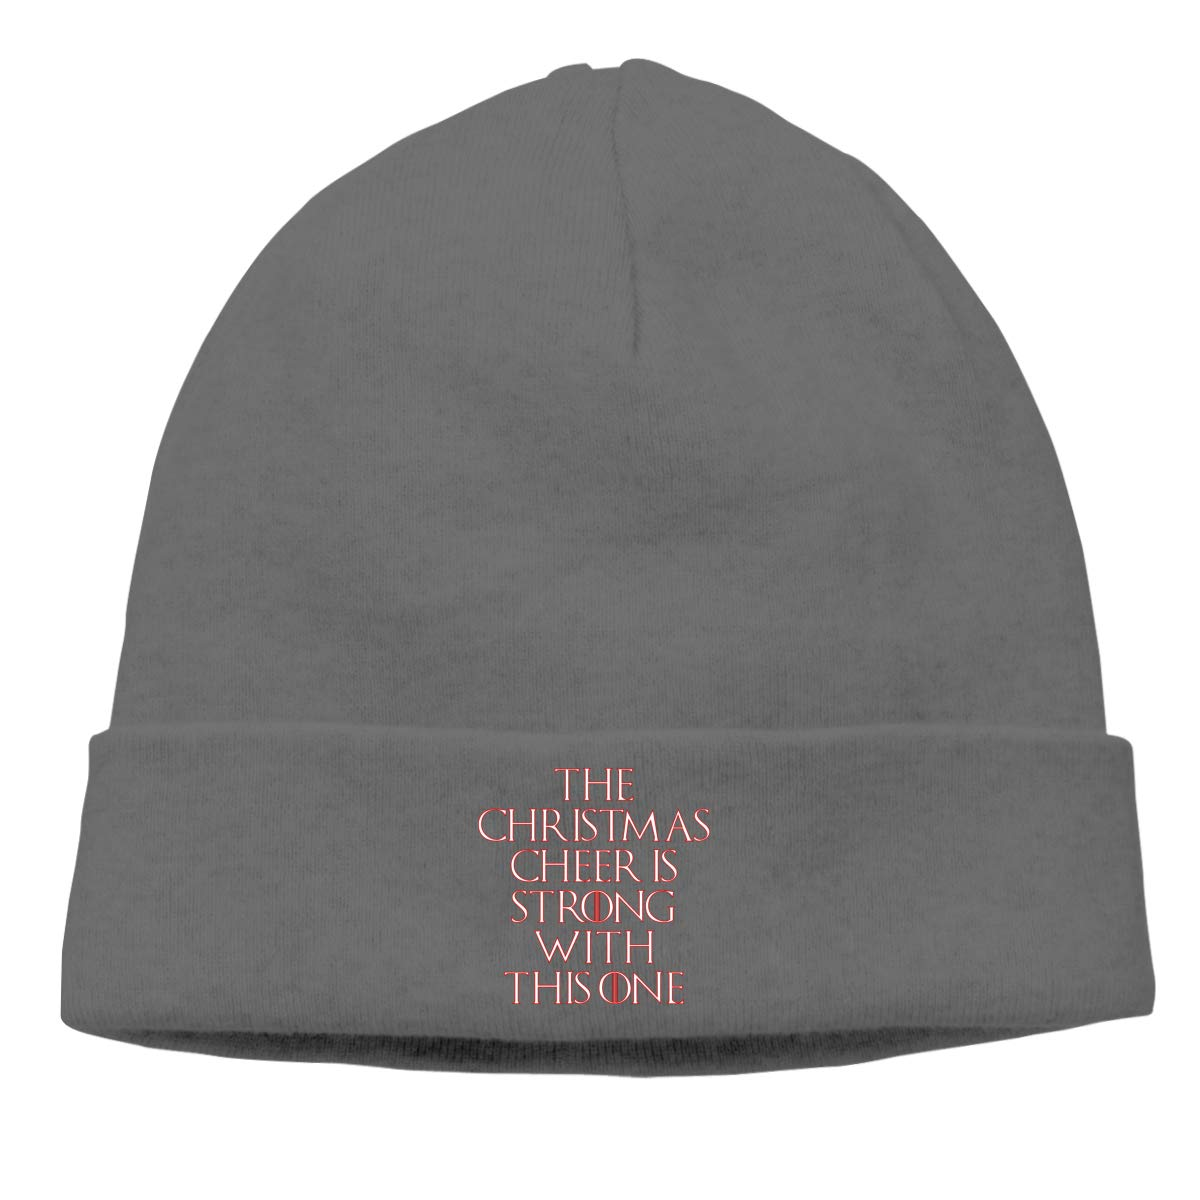 The Christmas Cheer is Strong with This One Skull Caps for Men Deep Heather